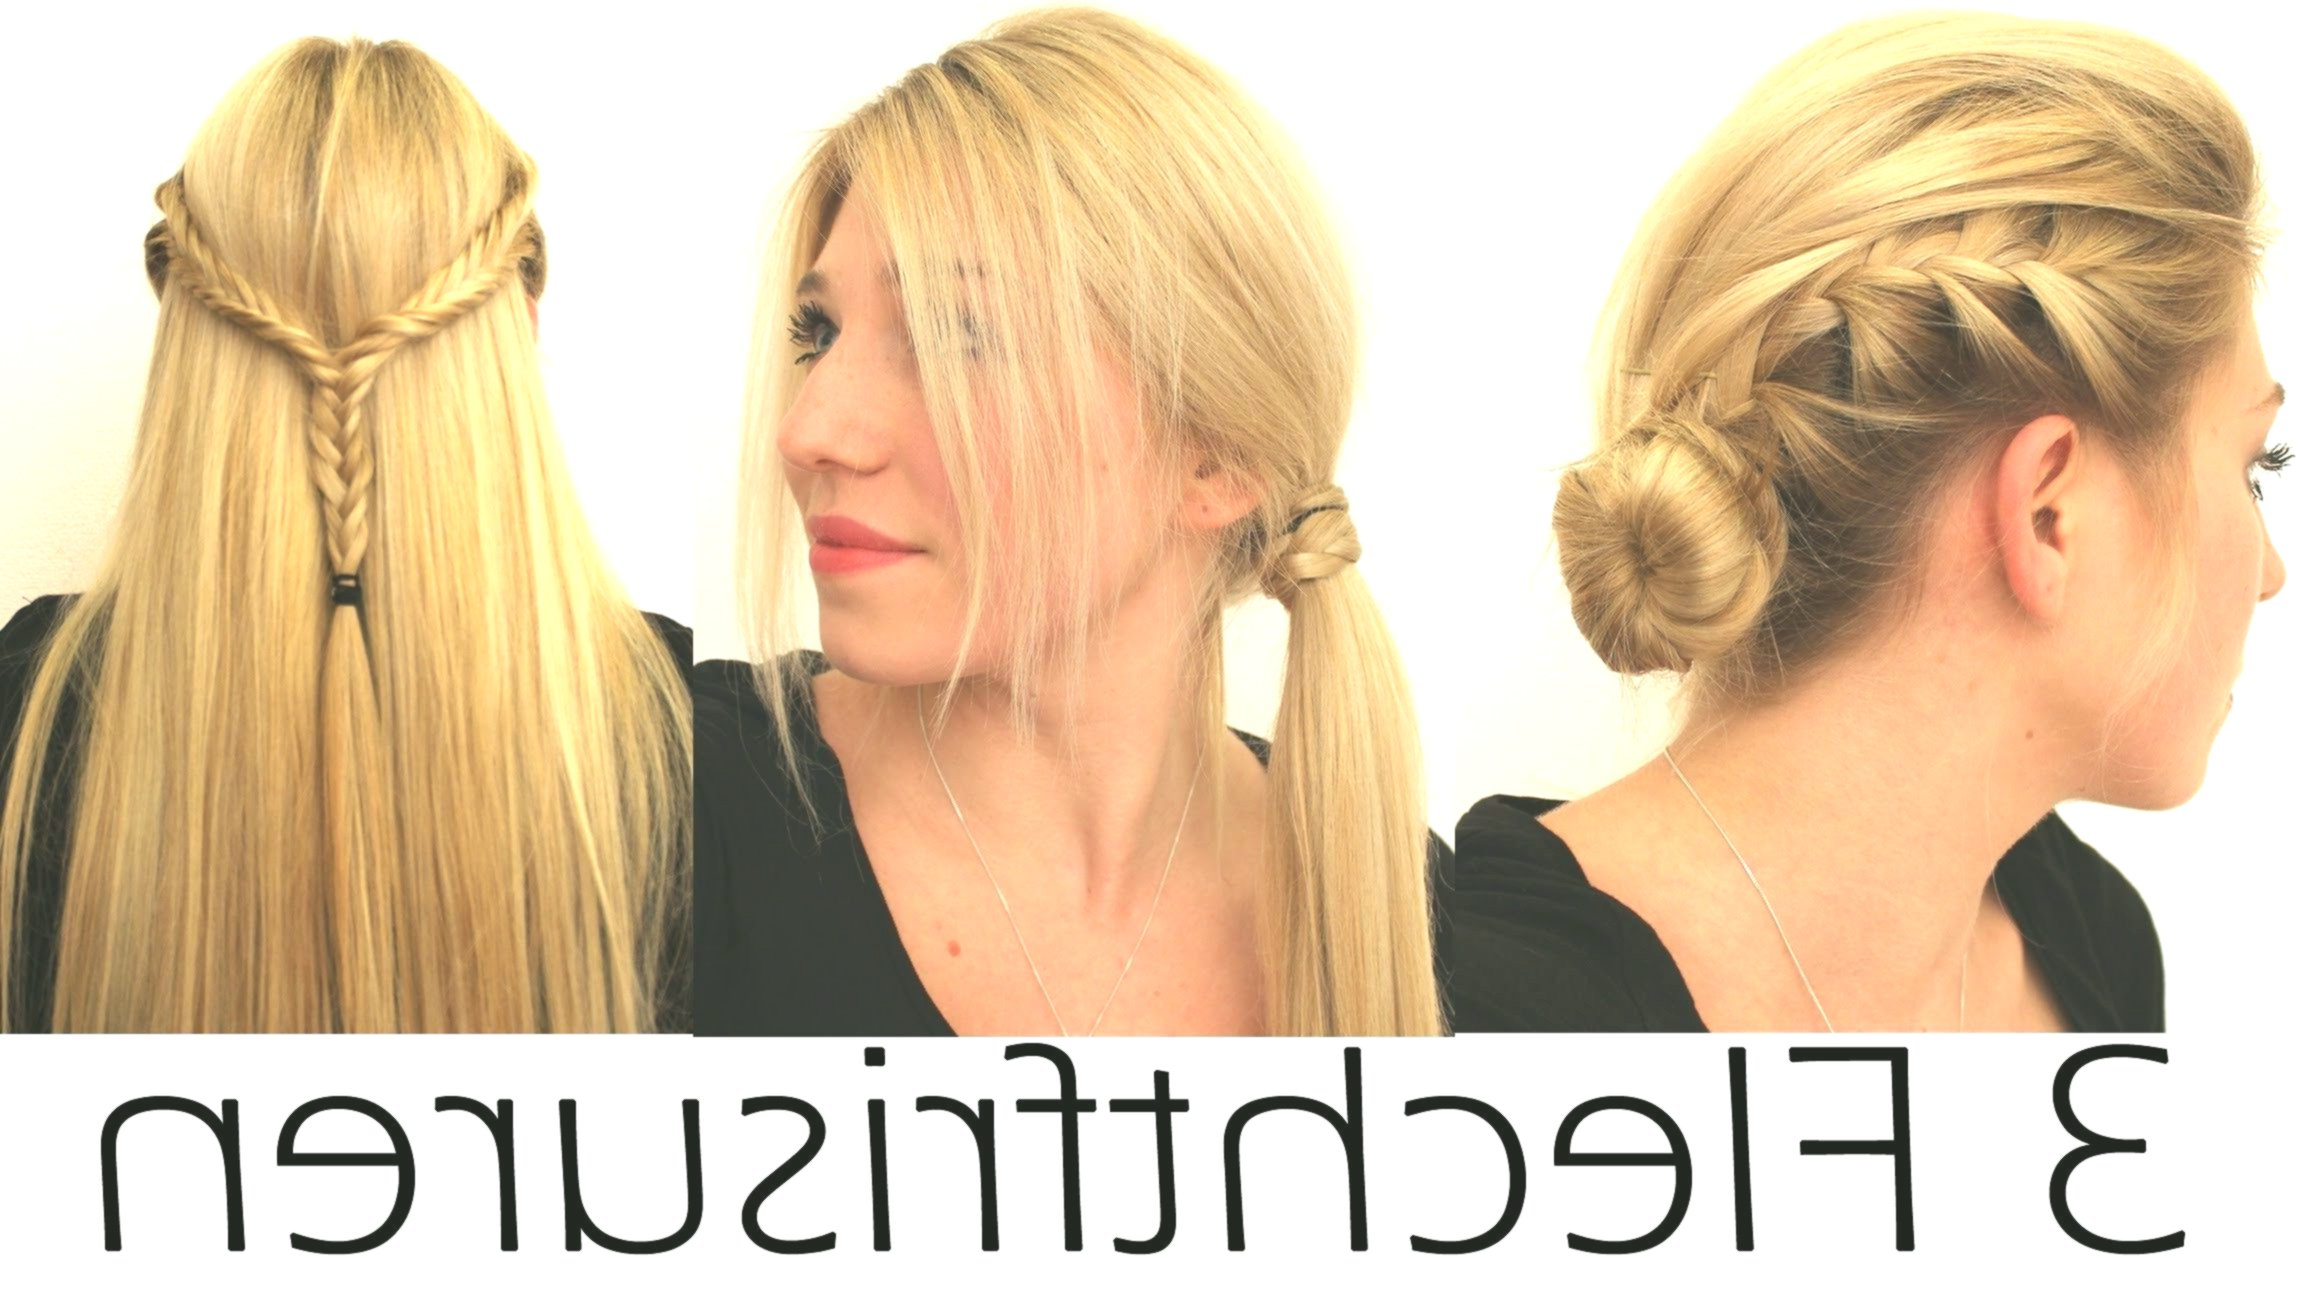 fascinating braiding simple concept-Breathtaking braided hairstyles Simple photo